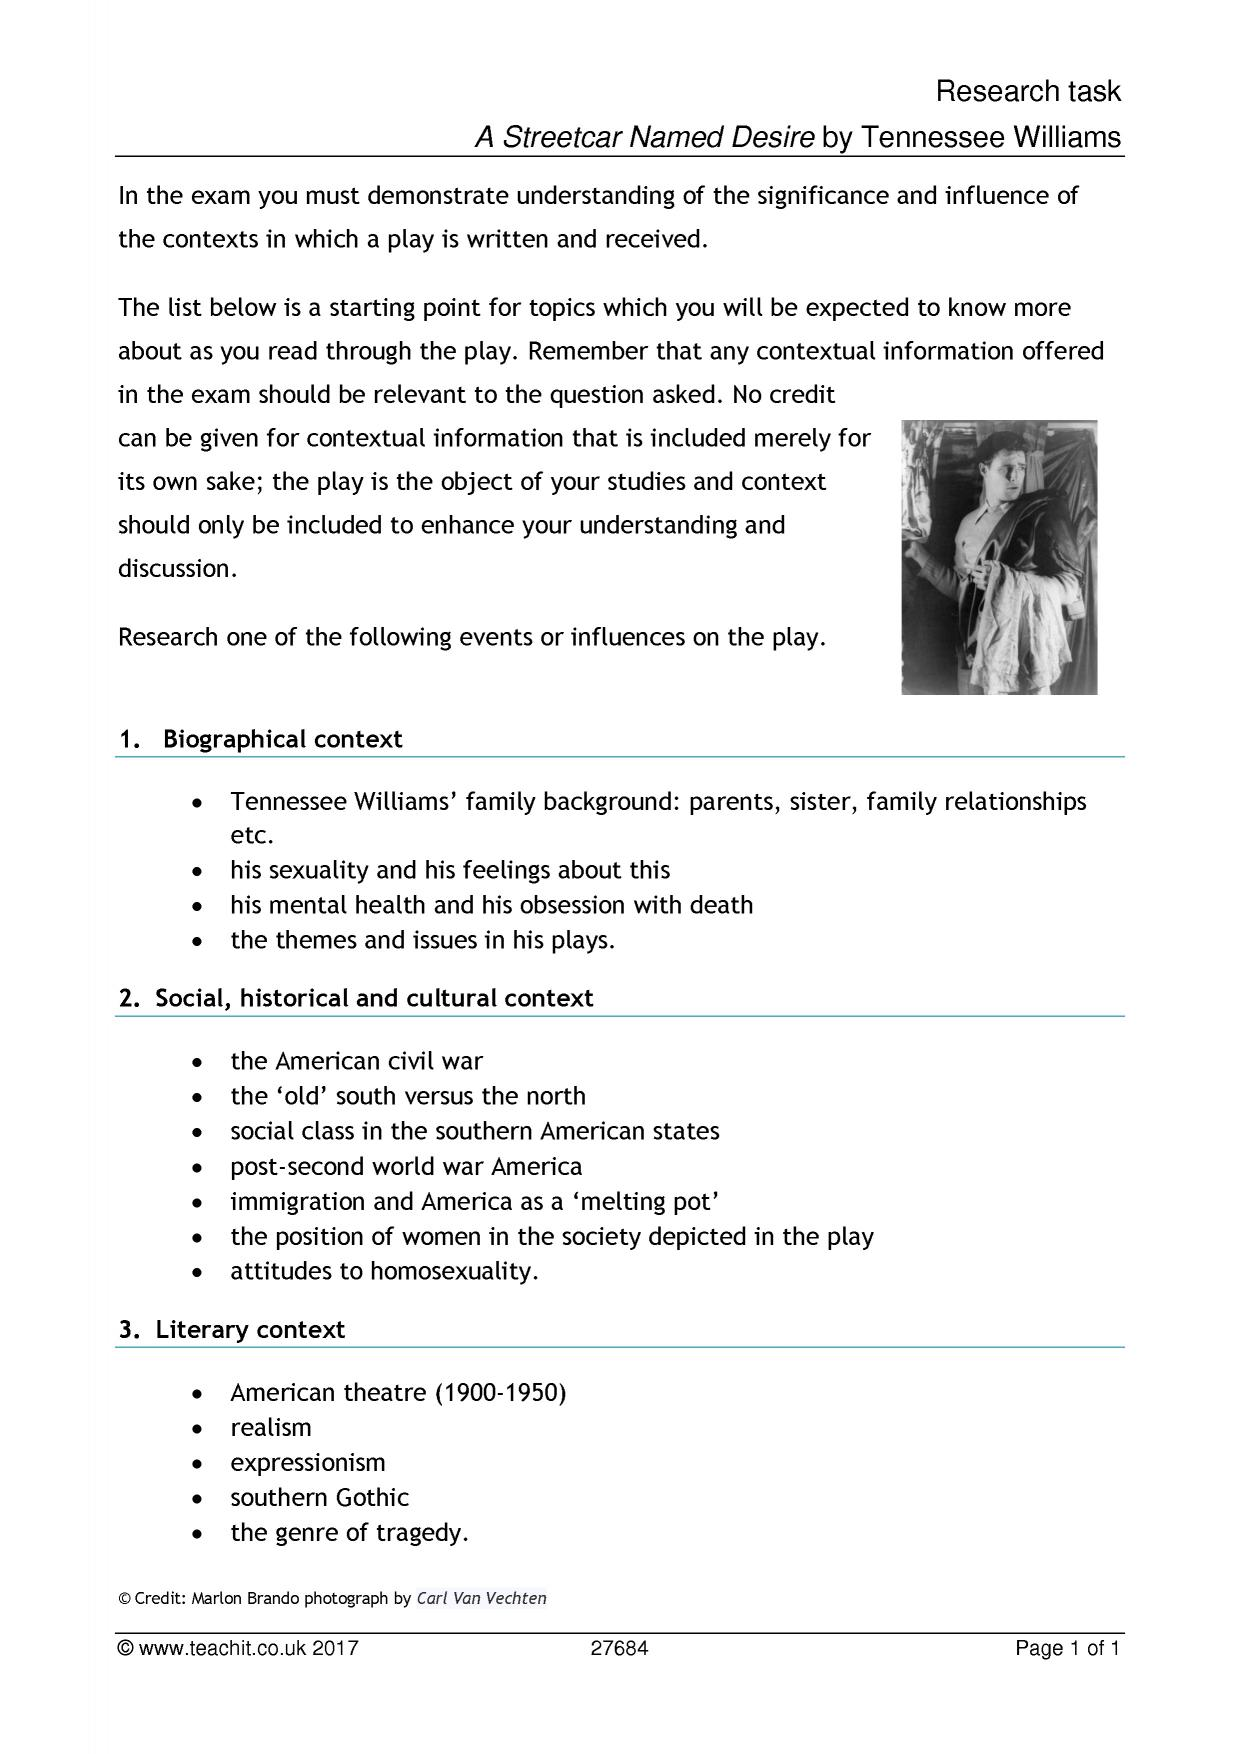 Page Essay Streetcar Named Desire By Tennessee Williams Essay Free Essay A Streetcar  Named Desire Essay Reality  Short Essay Writing also How To Do An Essay In Apa Format Streetcar Named Desire By Tennessee Williams Essay Research Paper  The Necklace By Guy De Maupassant Essay